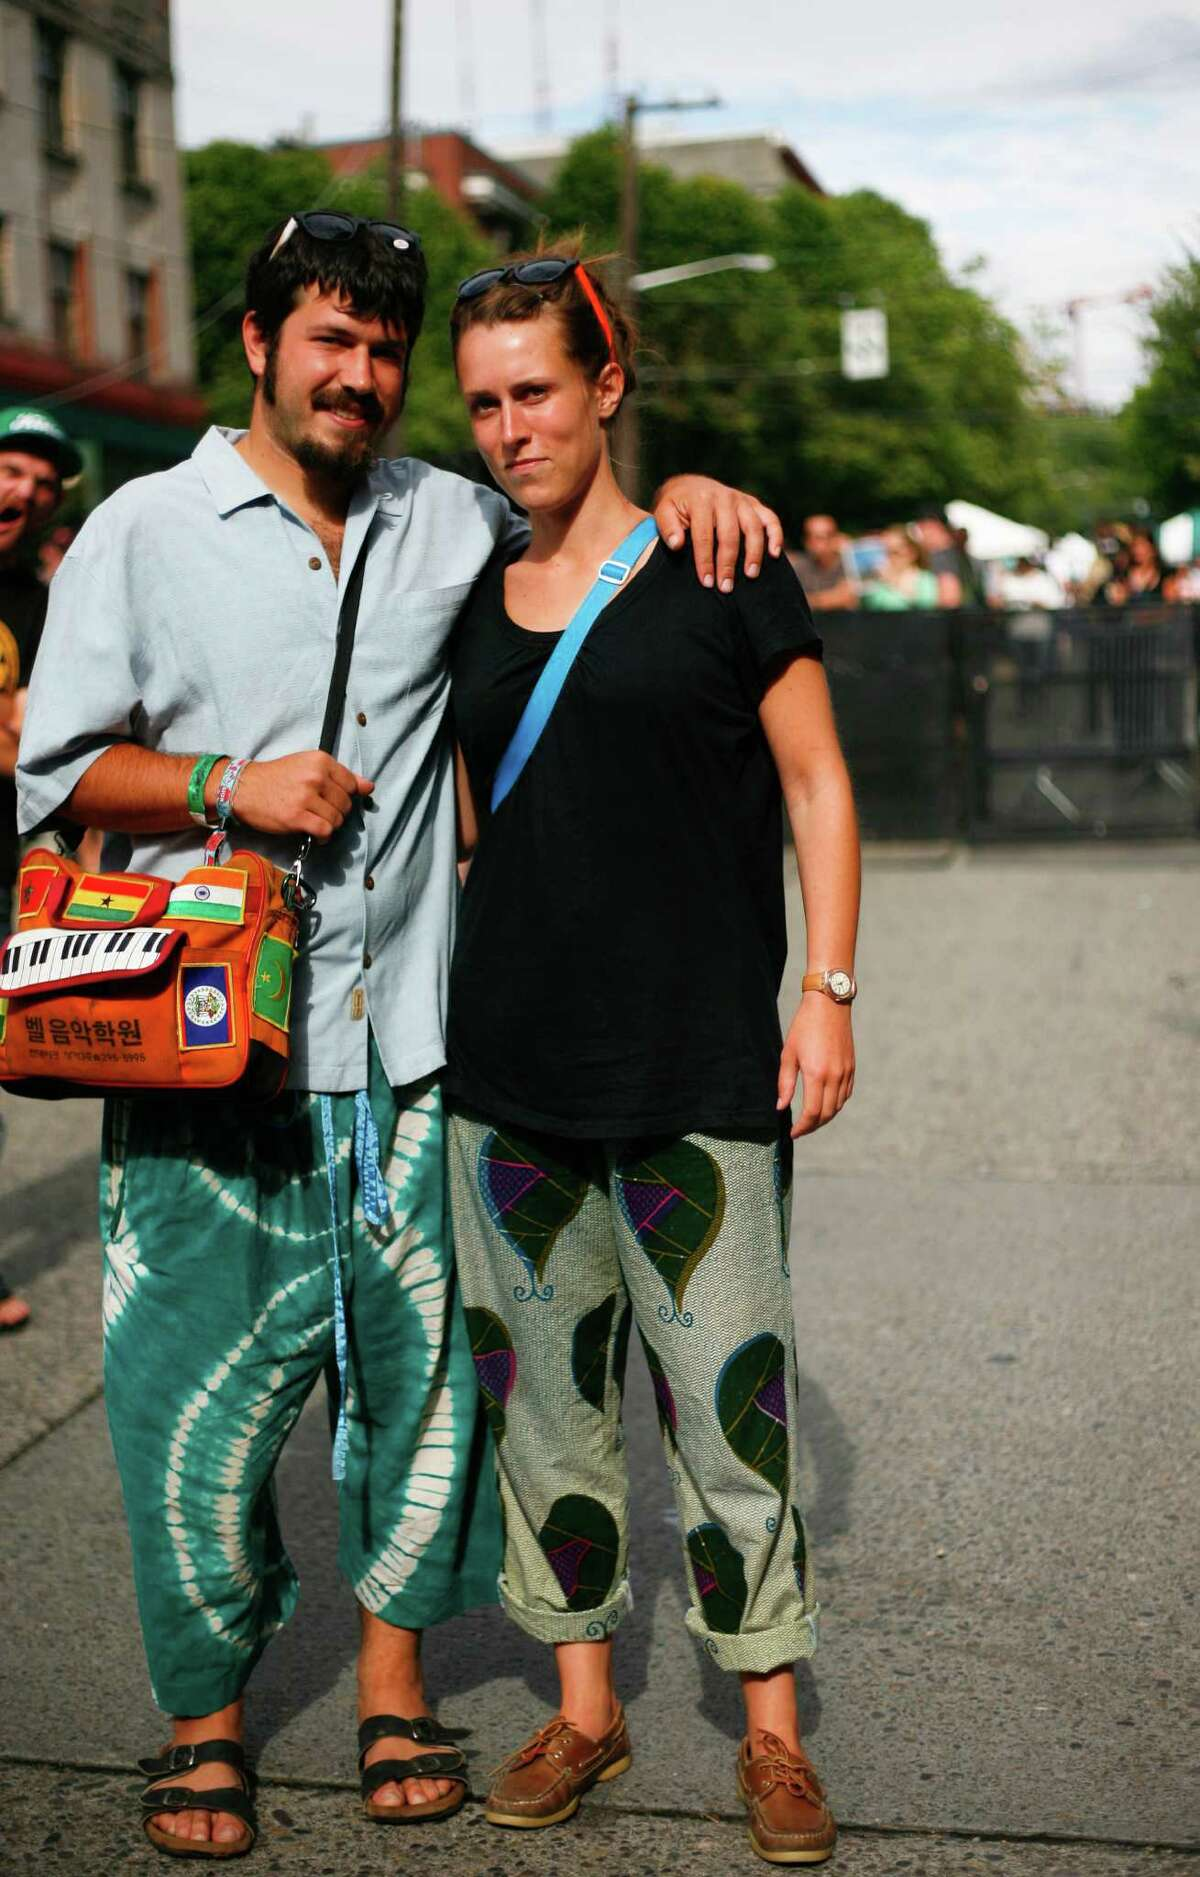 Joey Anchondo and Lize menard sport colorful pants.